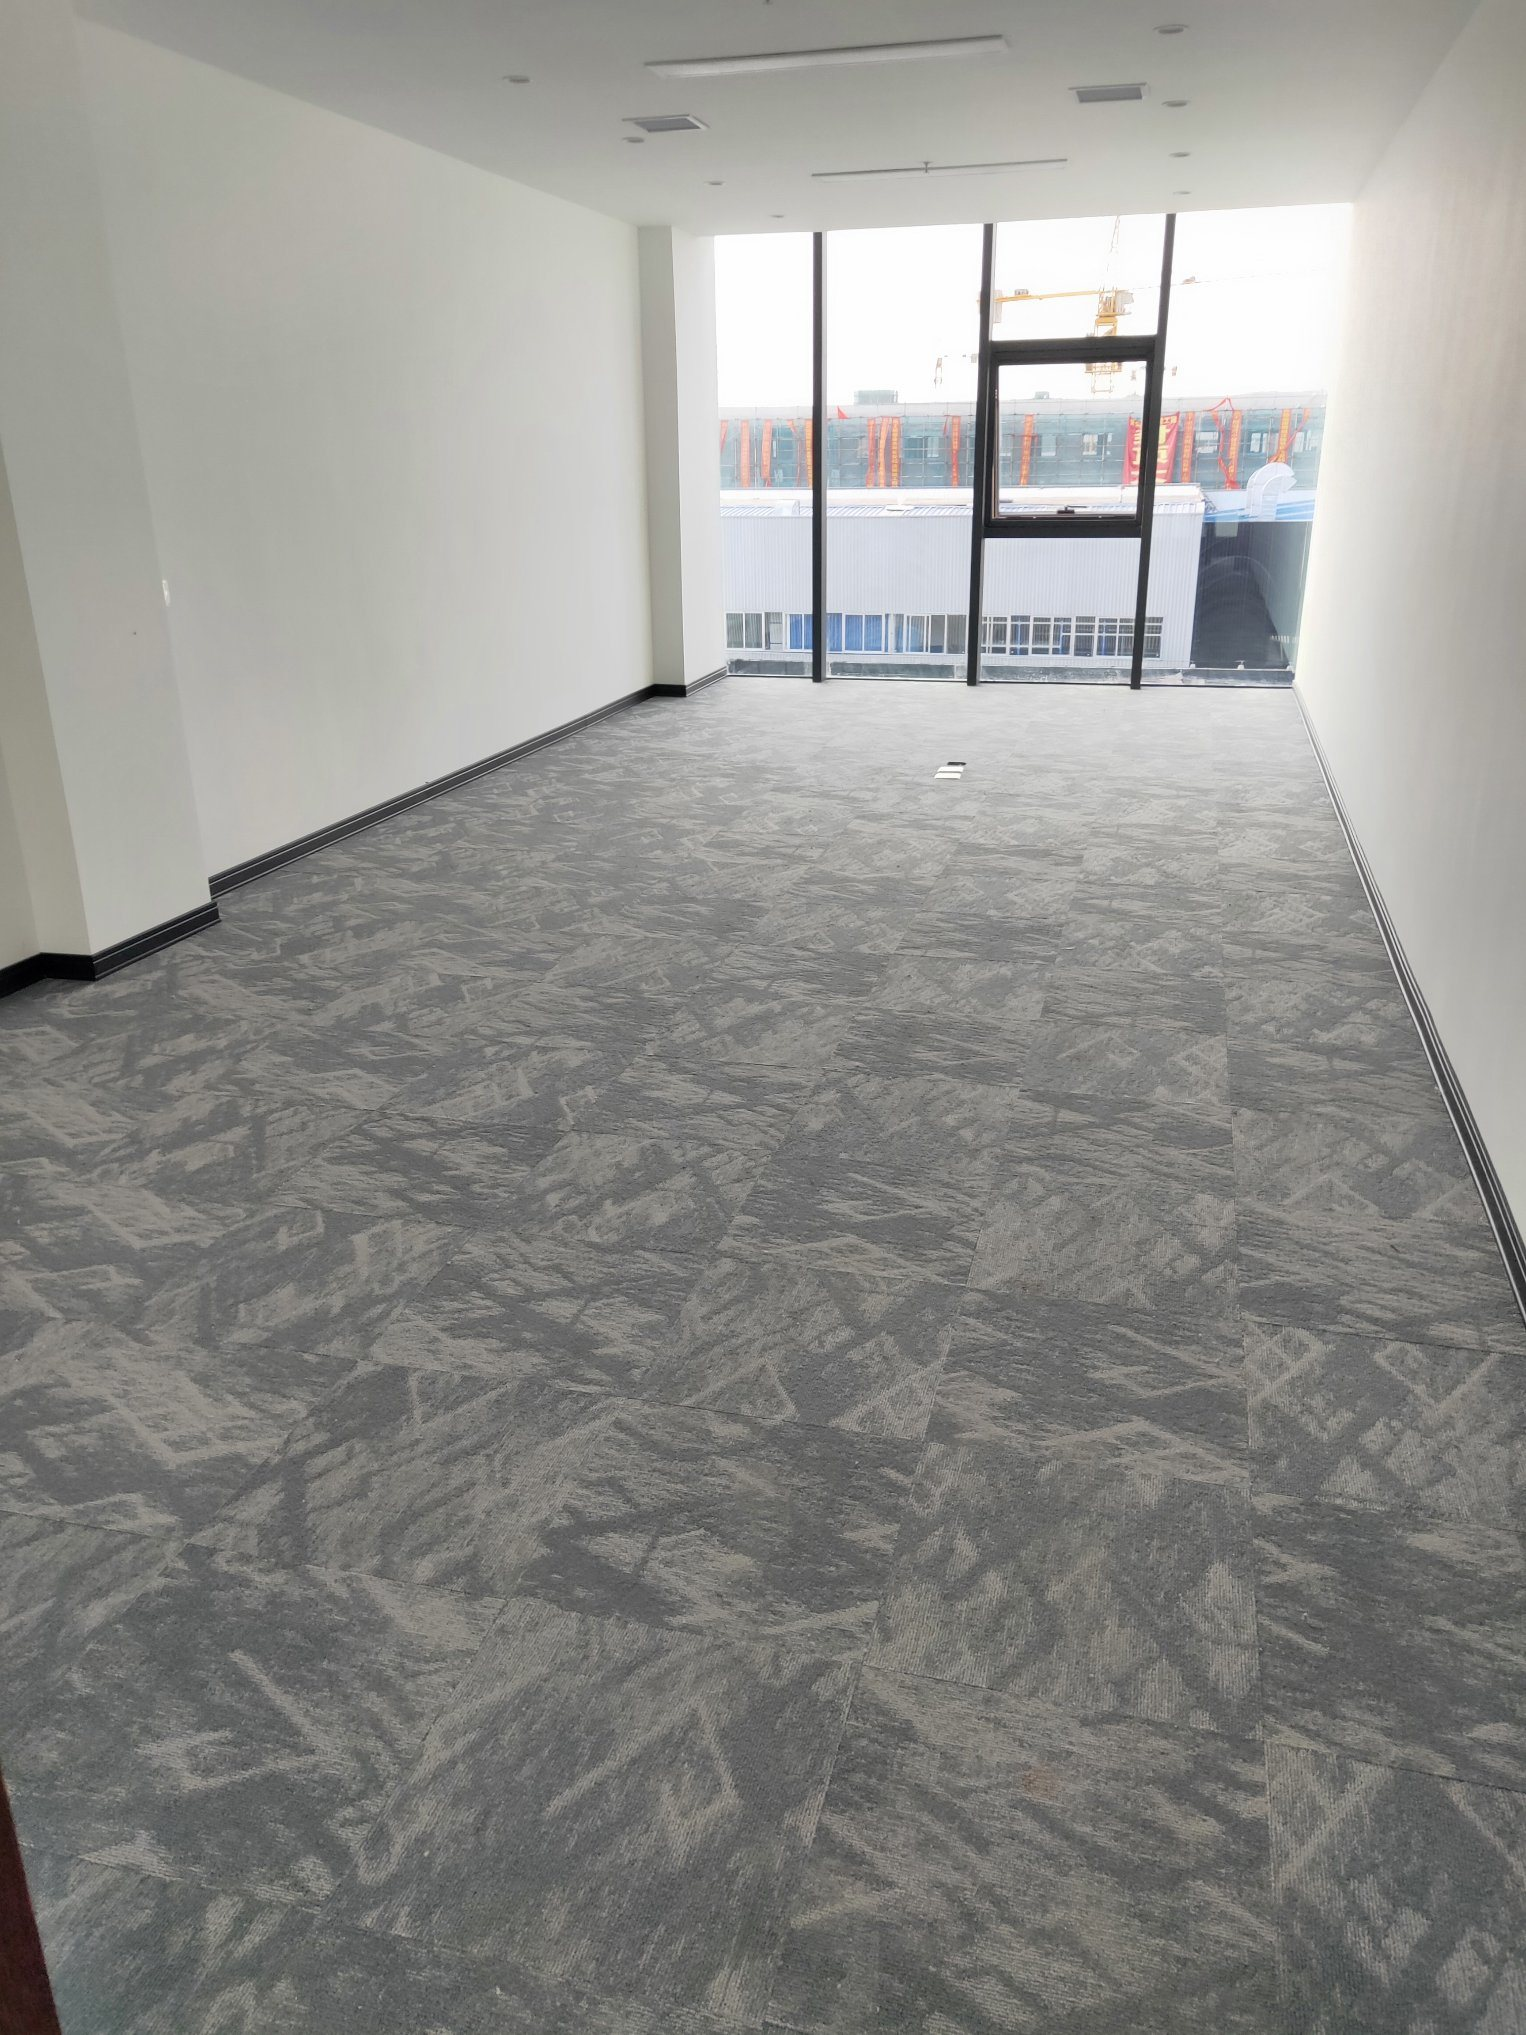 Image of: China Library Carpet Tile Pvc Backing Office Commercial Carpet Tiles Building Materials Floor Carpet Tile Tufted Nylon Carpet Tiles Floor Carpet China Carpet Tile And Office Carpet Price